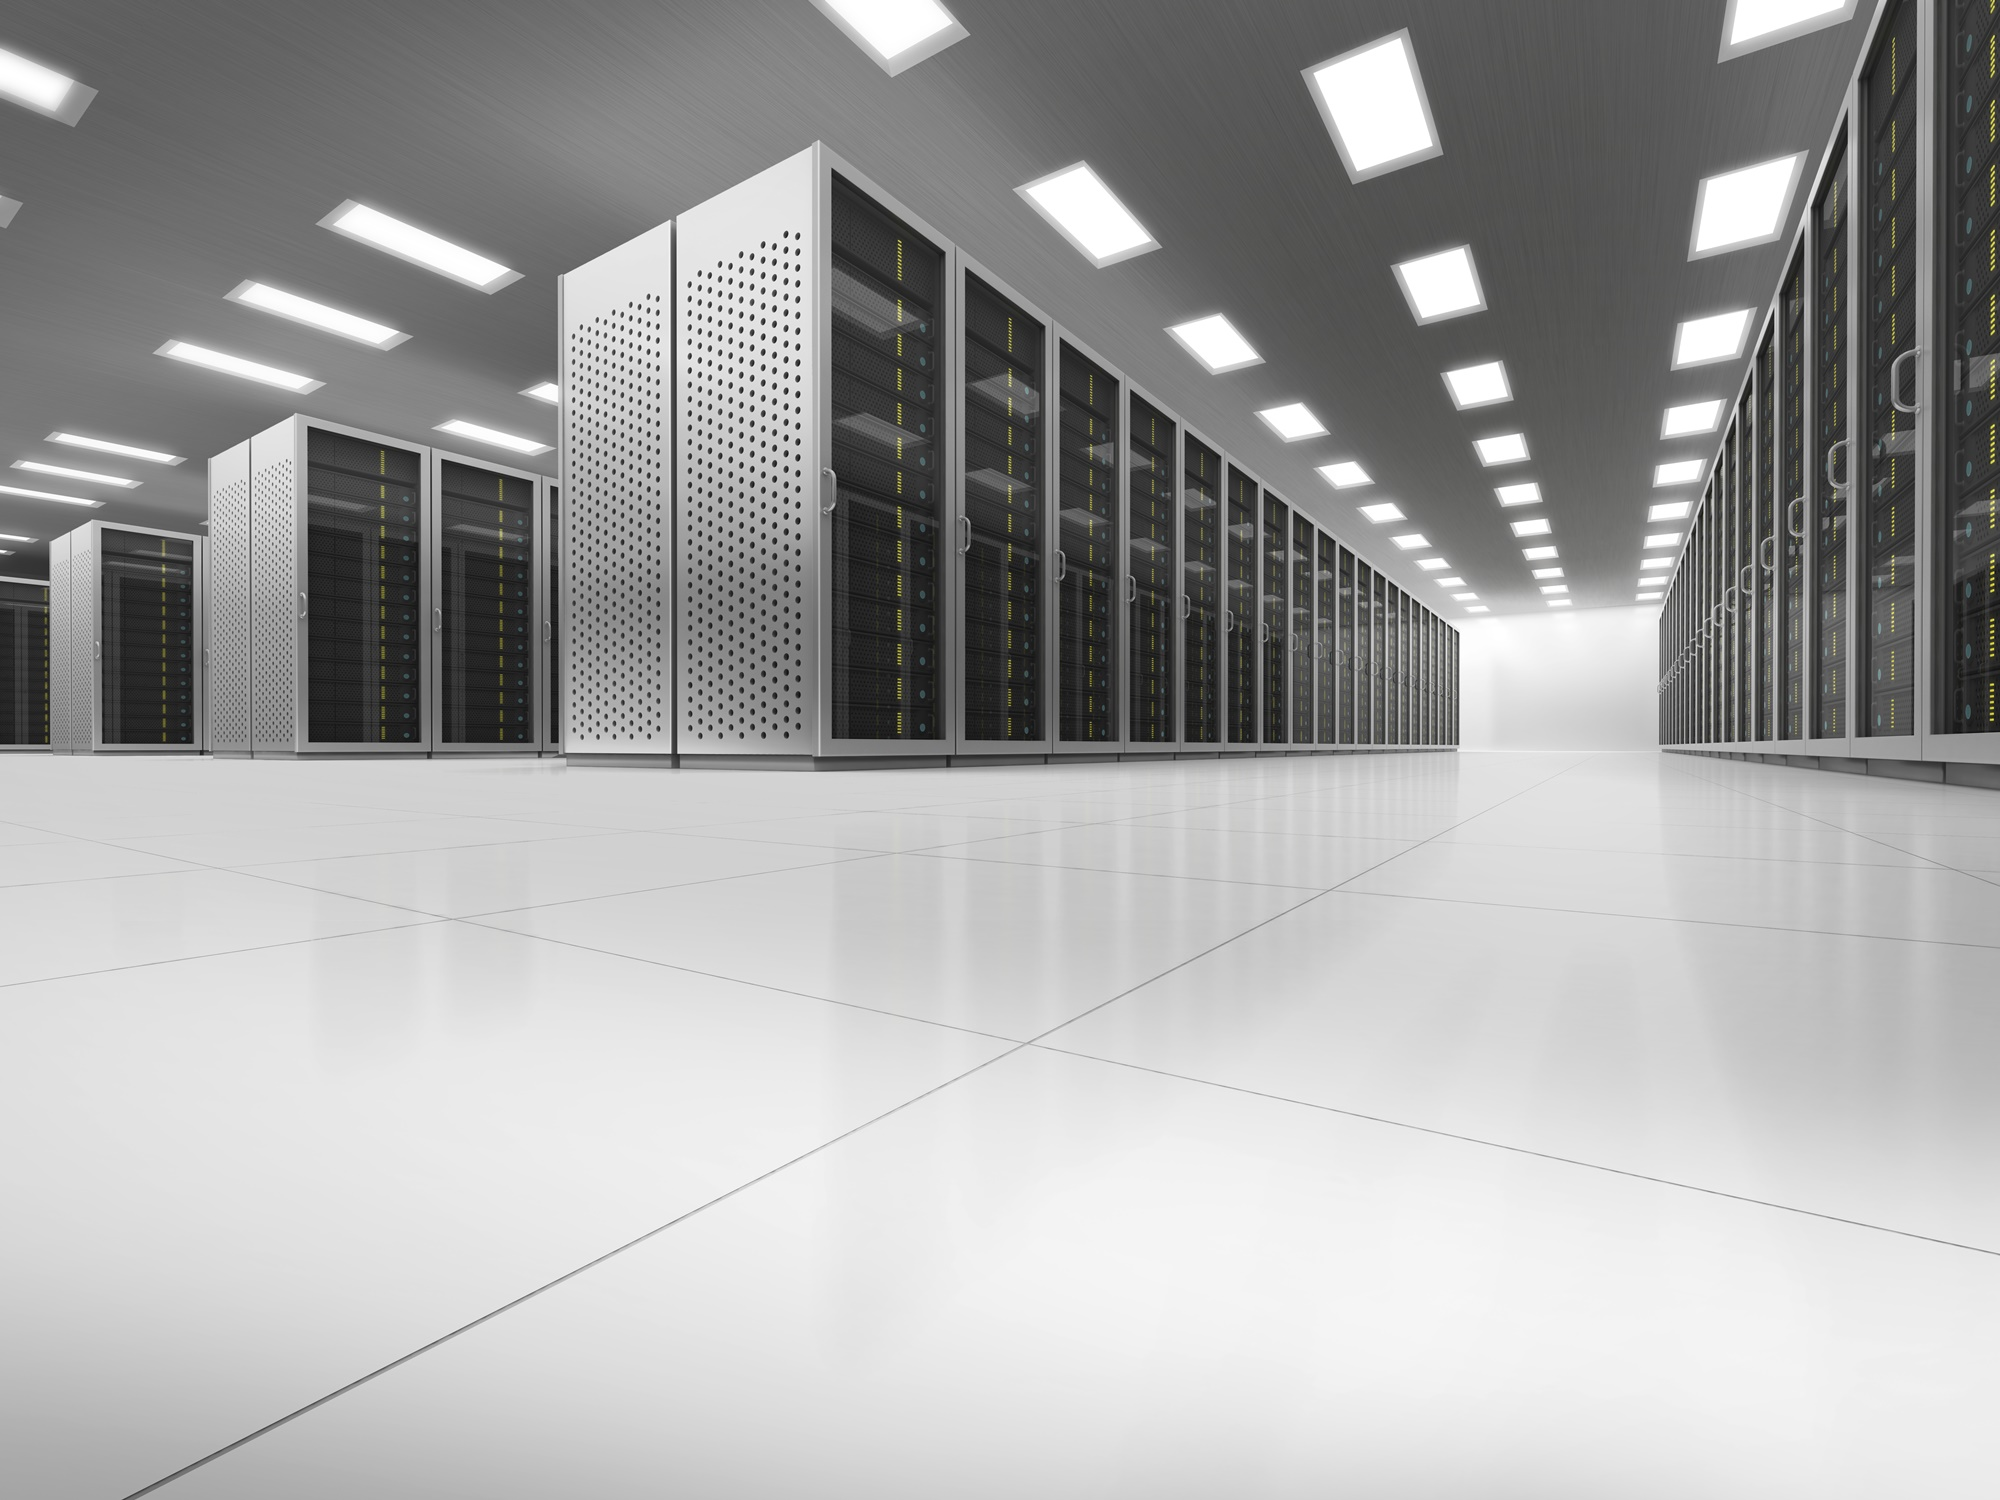 6646_Data-center-IT-cabinets-stock